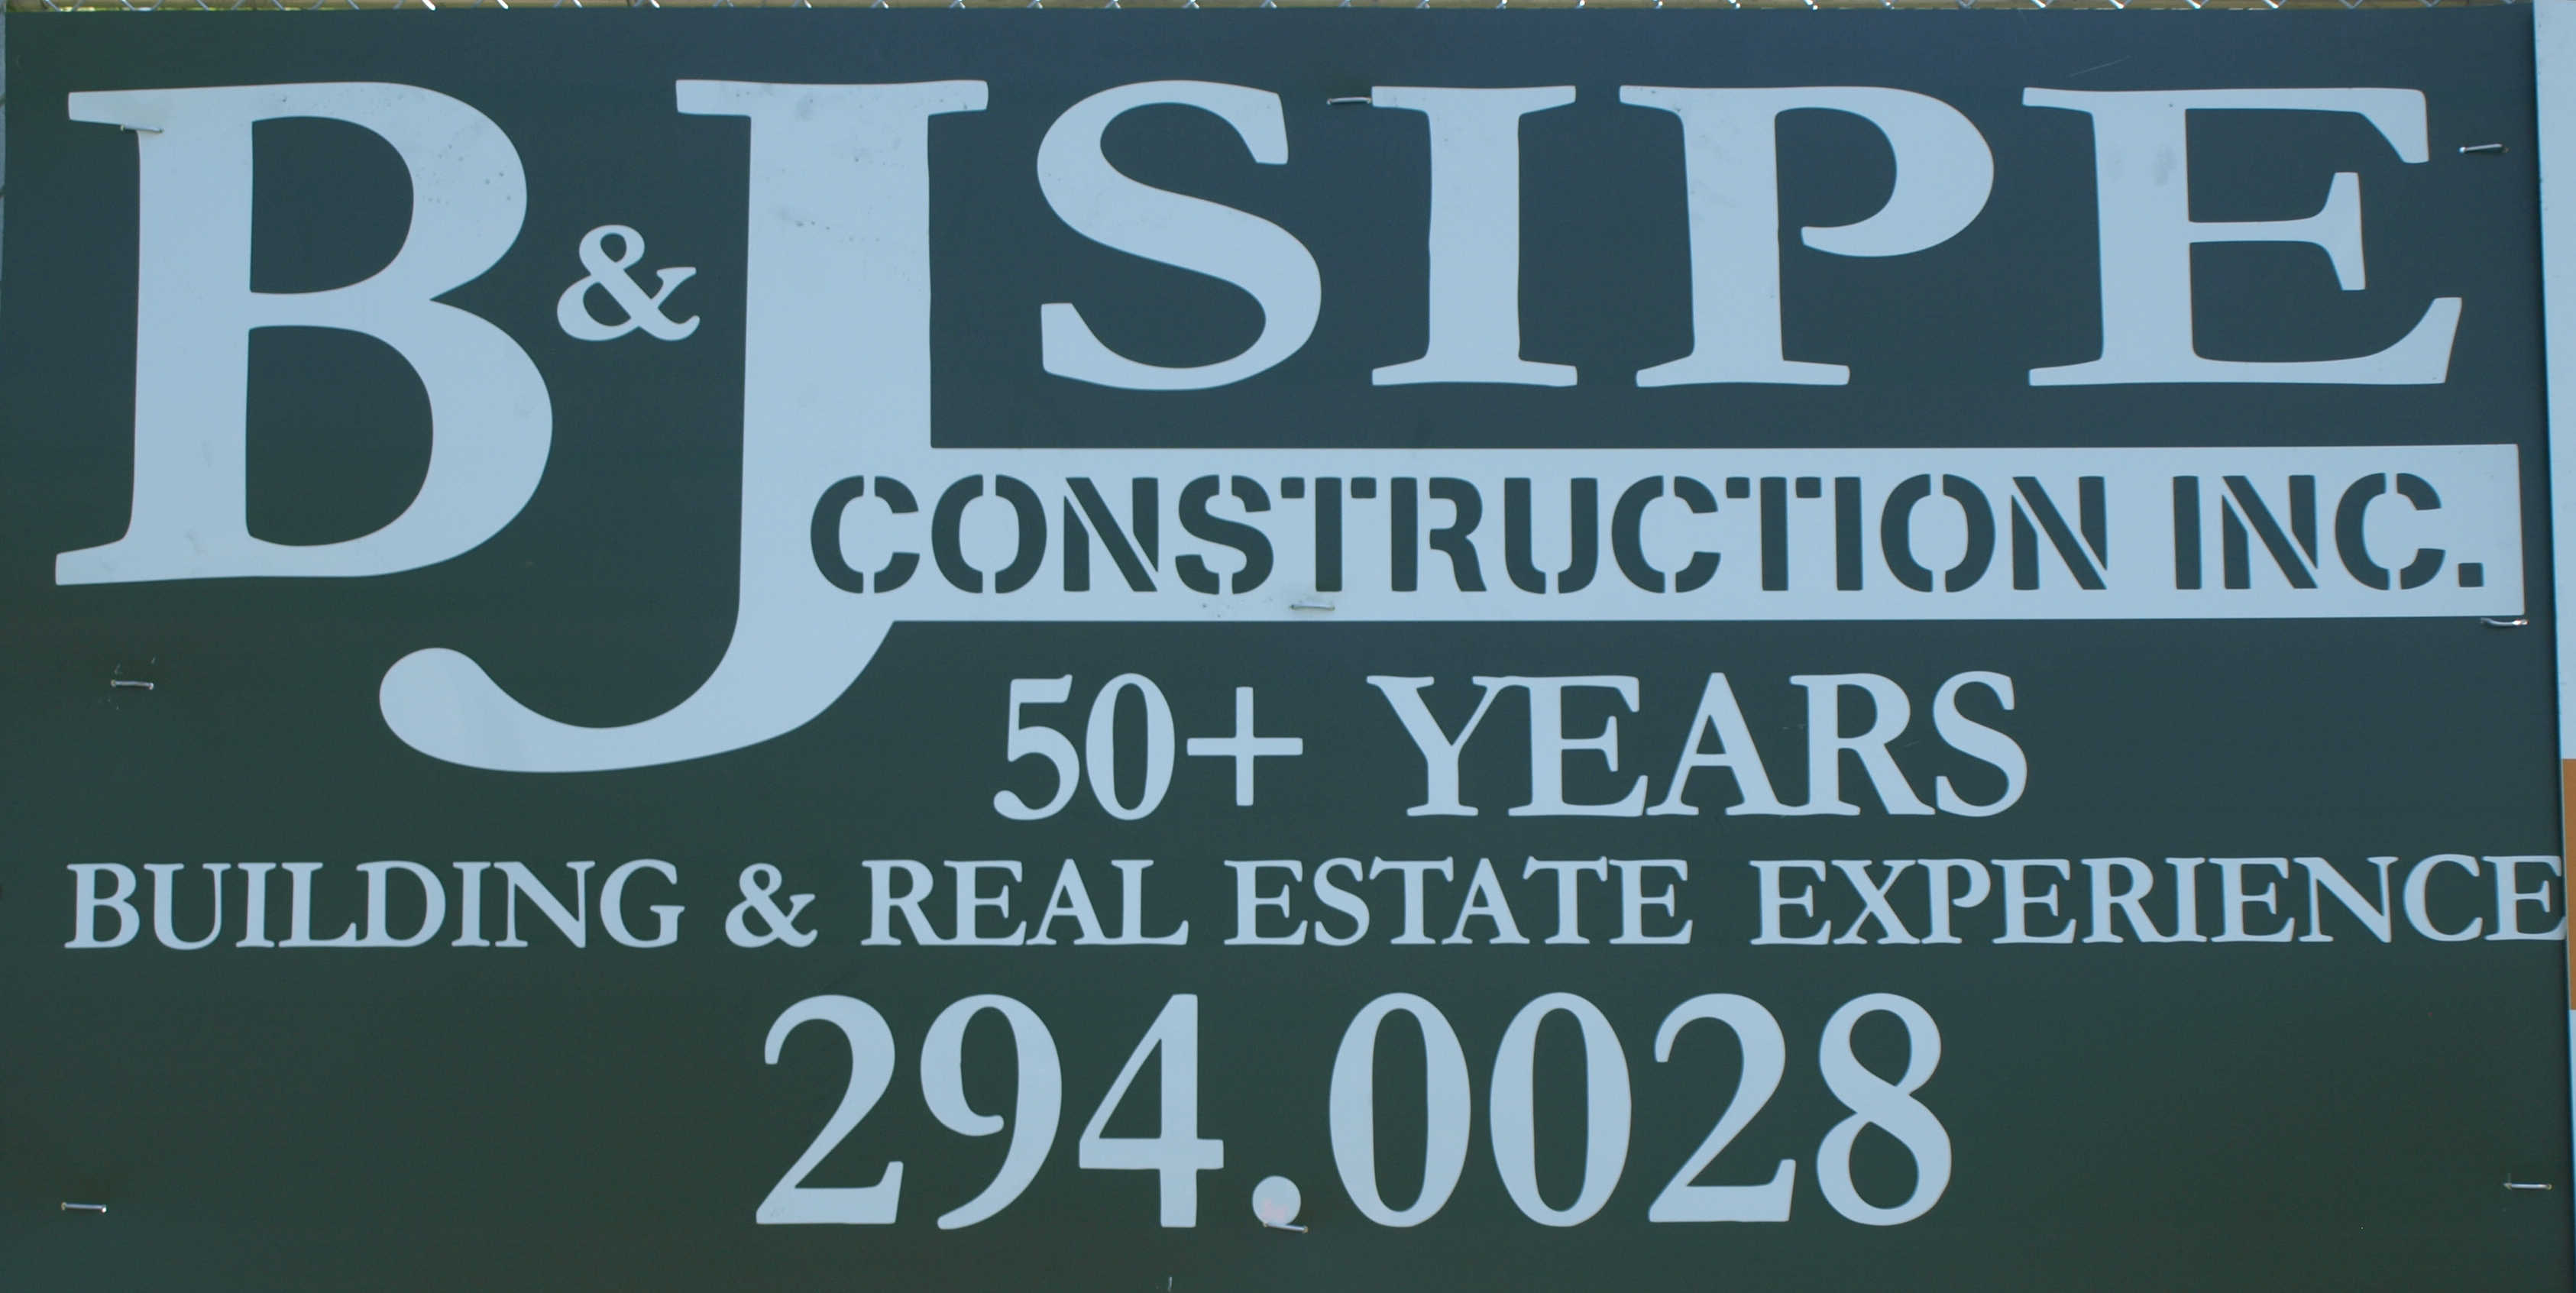 B&J Sipe Construction Co,